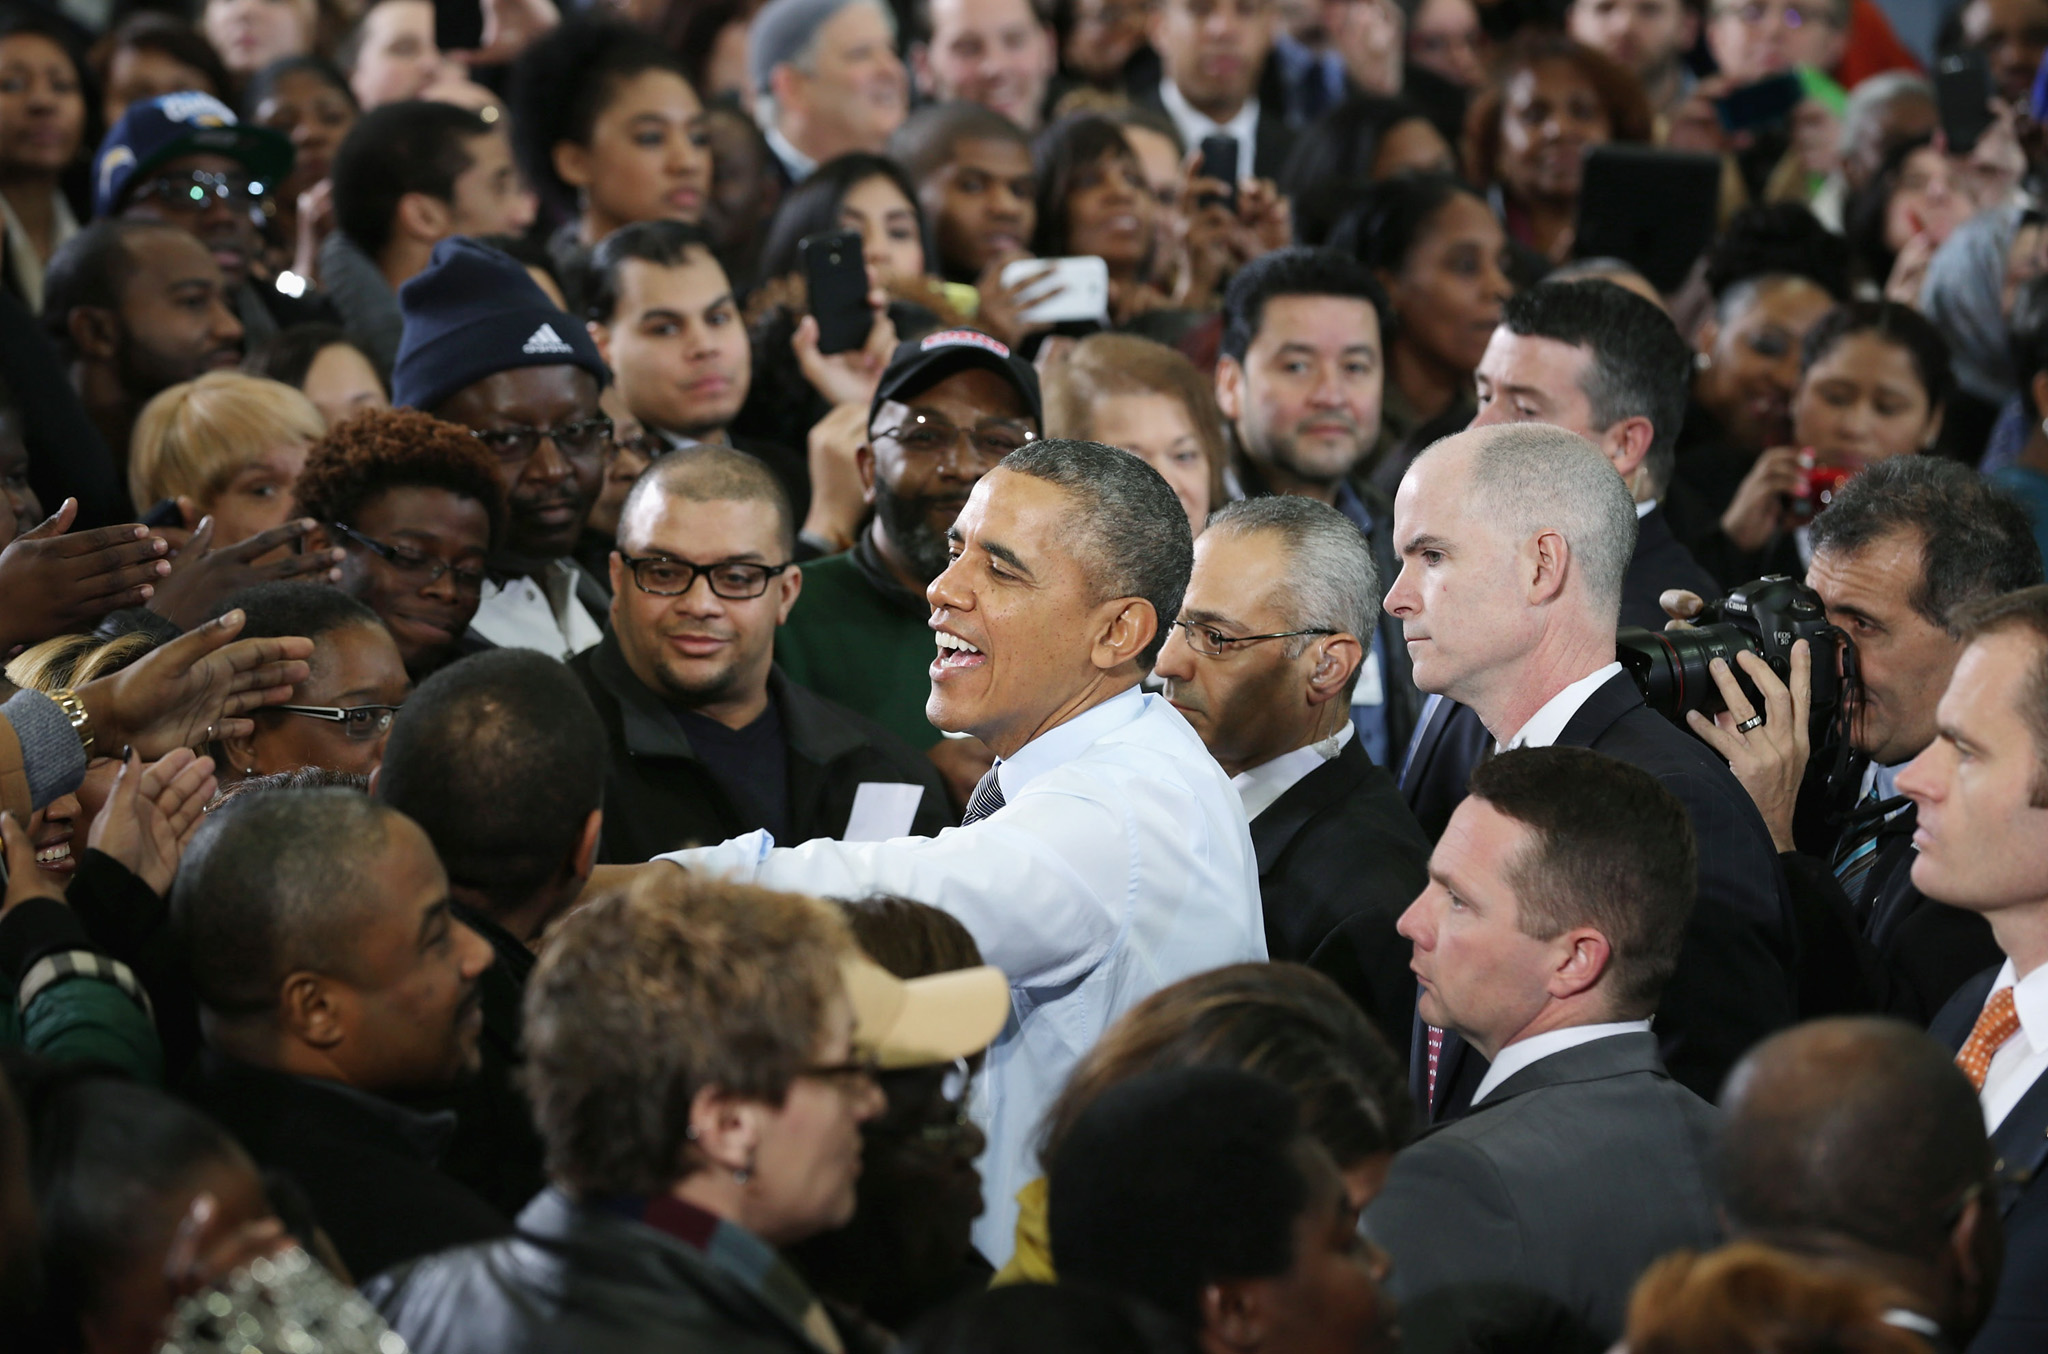 President Obama Delivers Economic Address At A Maryland Costco...LANHAM, MD - JANUARY 29:  U.S. President Barack Obama greets supporters, local politicans and store employees after delivering remarks at Costco January 29, 2014 in Lanham, Maryland. Repeating some of the same policy proposals from his State of the Union speech the night before, Obama is beginning a two-day, four-state tour to promote a raise in the minimum wage, immigraiton reform and other other policy ideas.  (Photo by Chip Somodevilla/Getty Images)